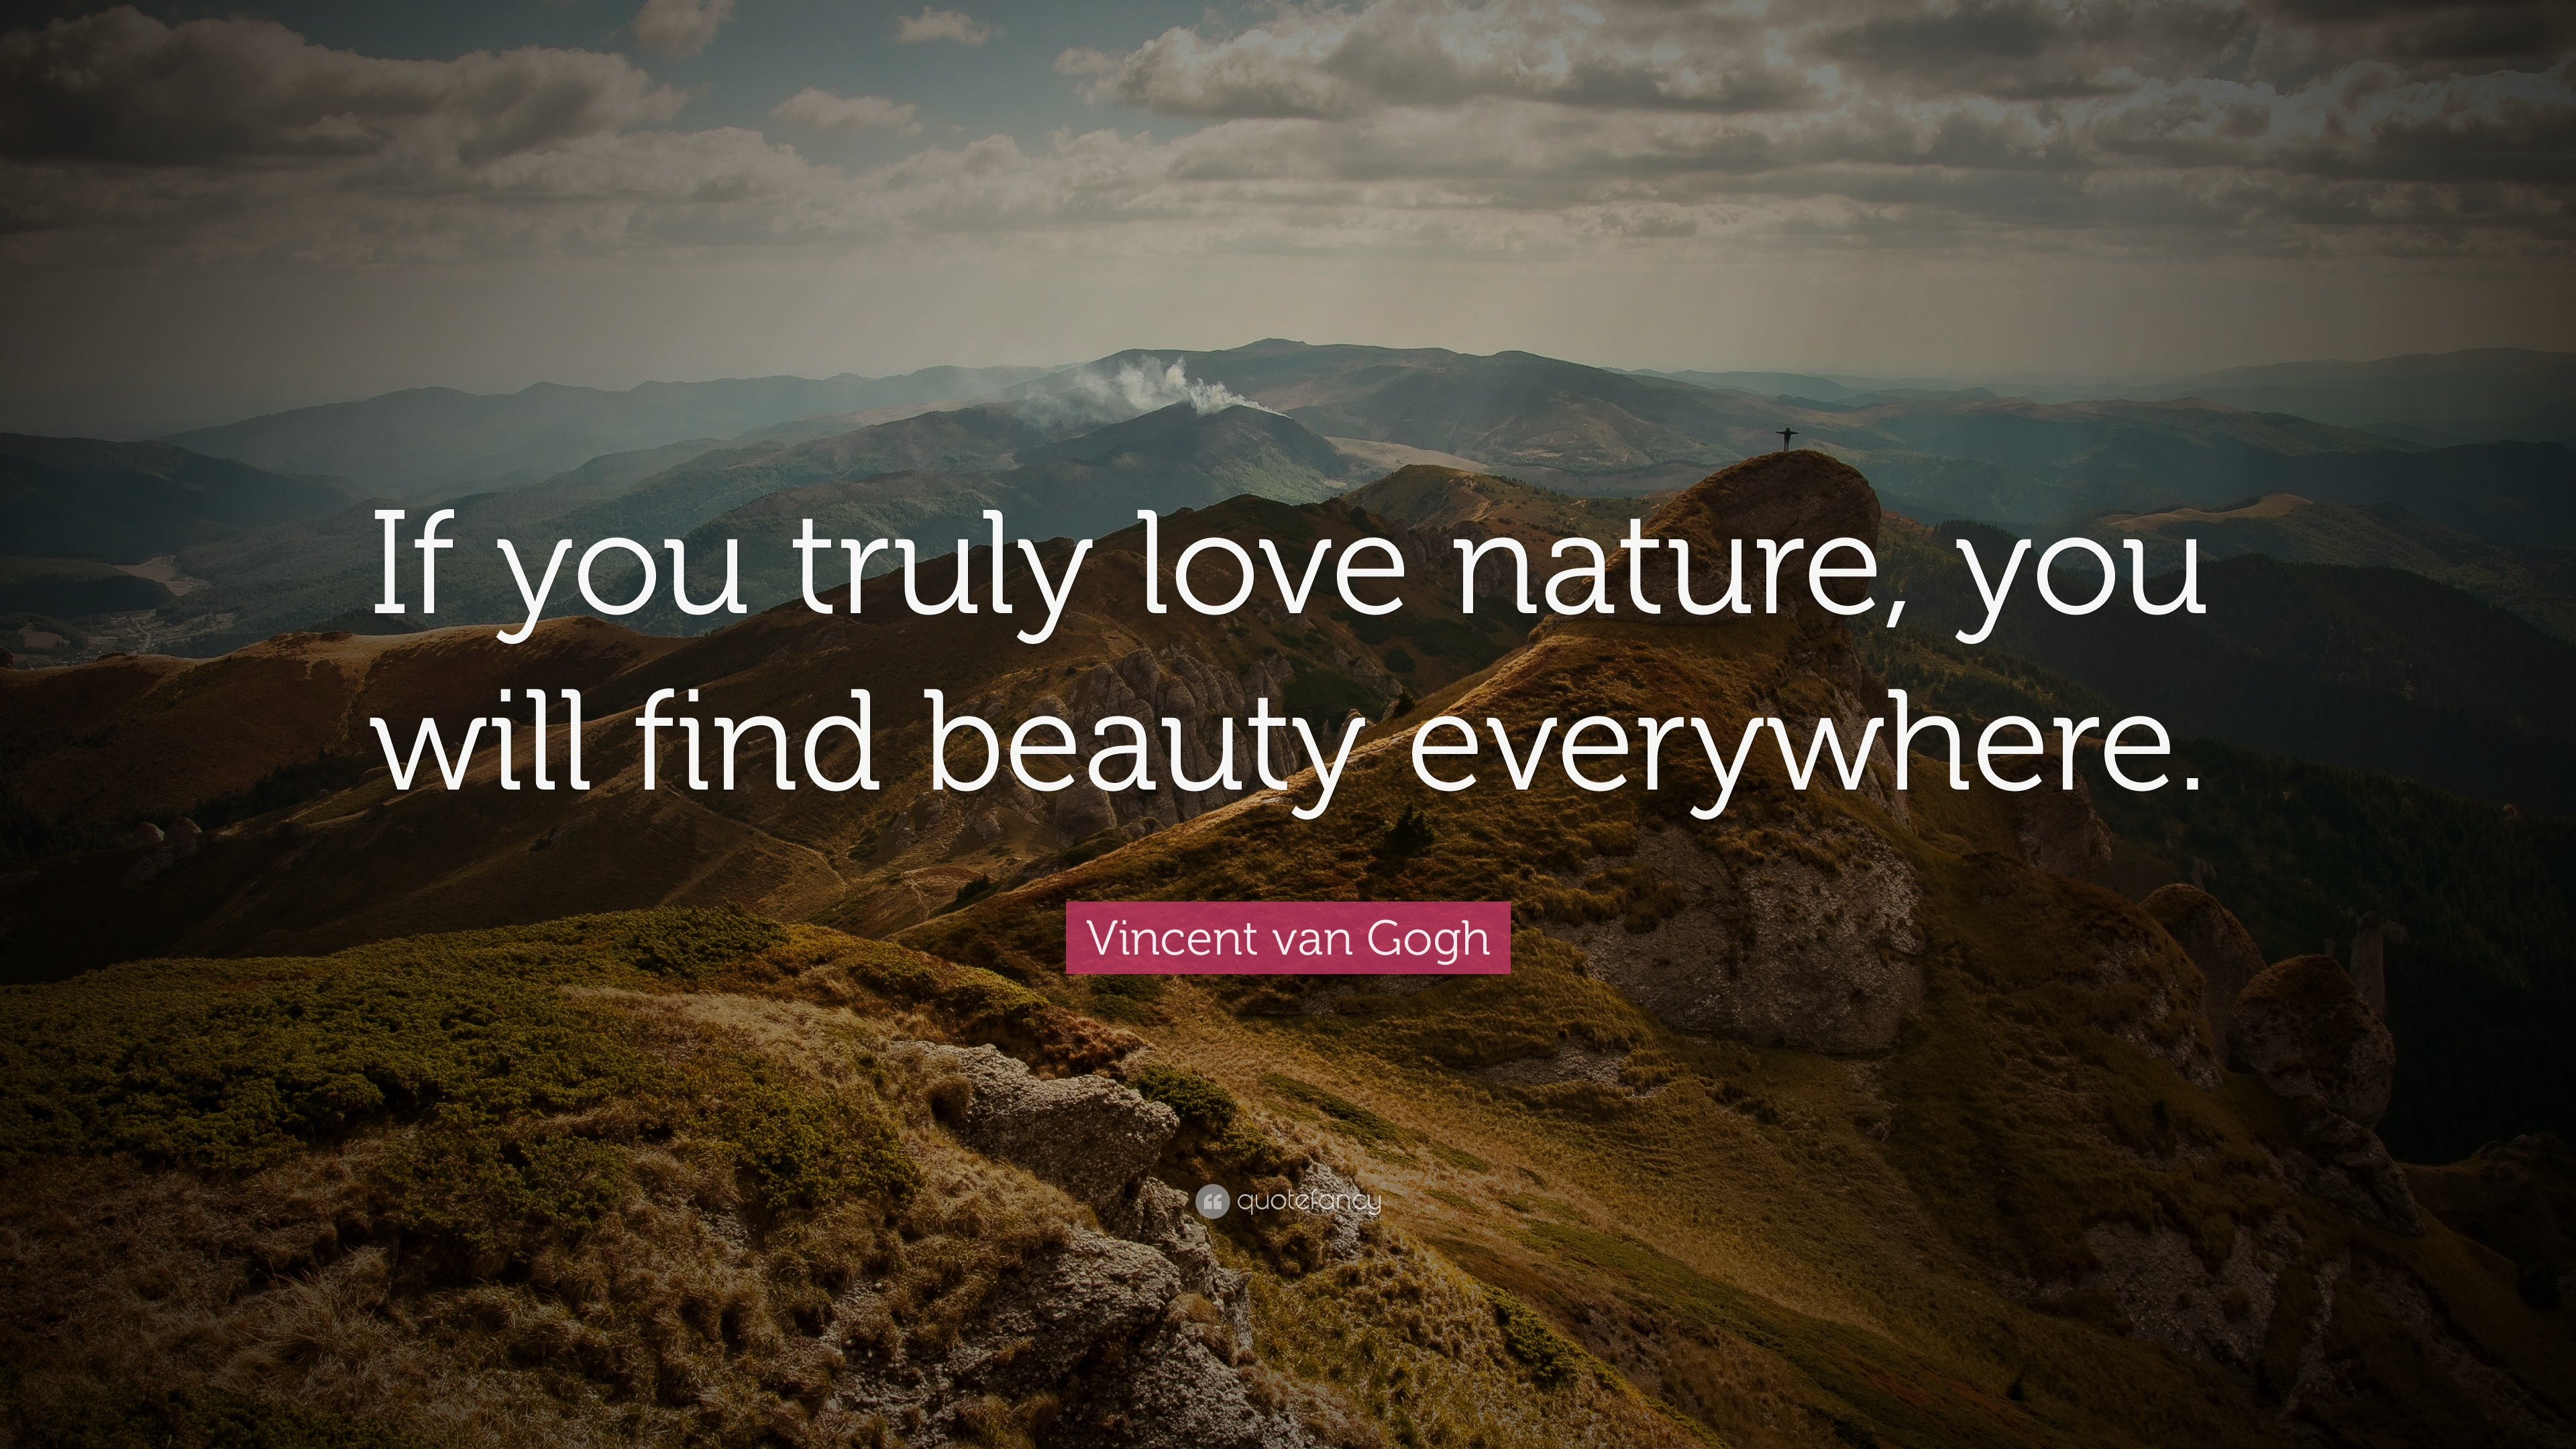 nature truly beauty gogh van everywhere vincent quote wallpapers quotefancy